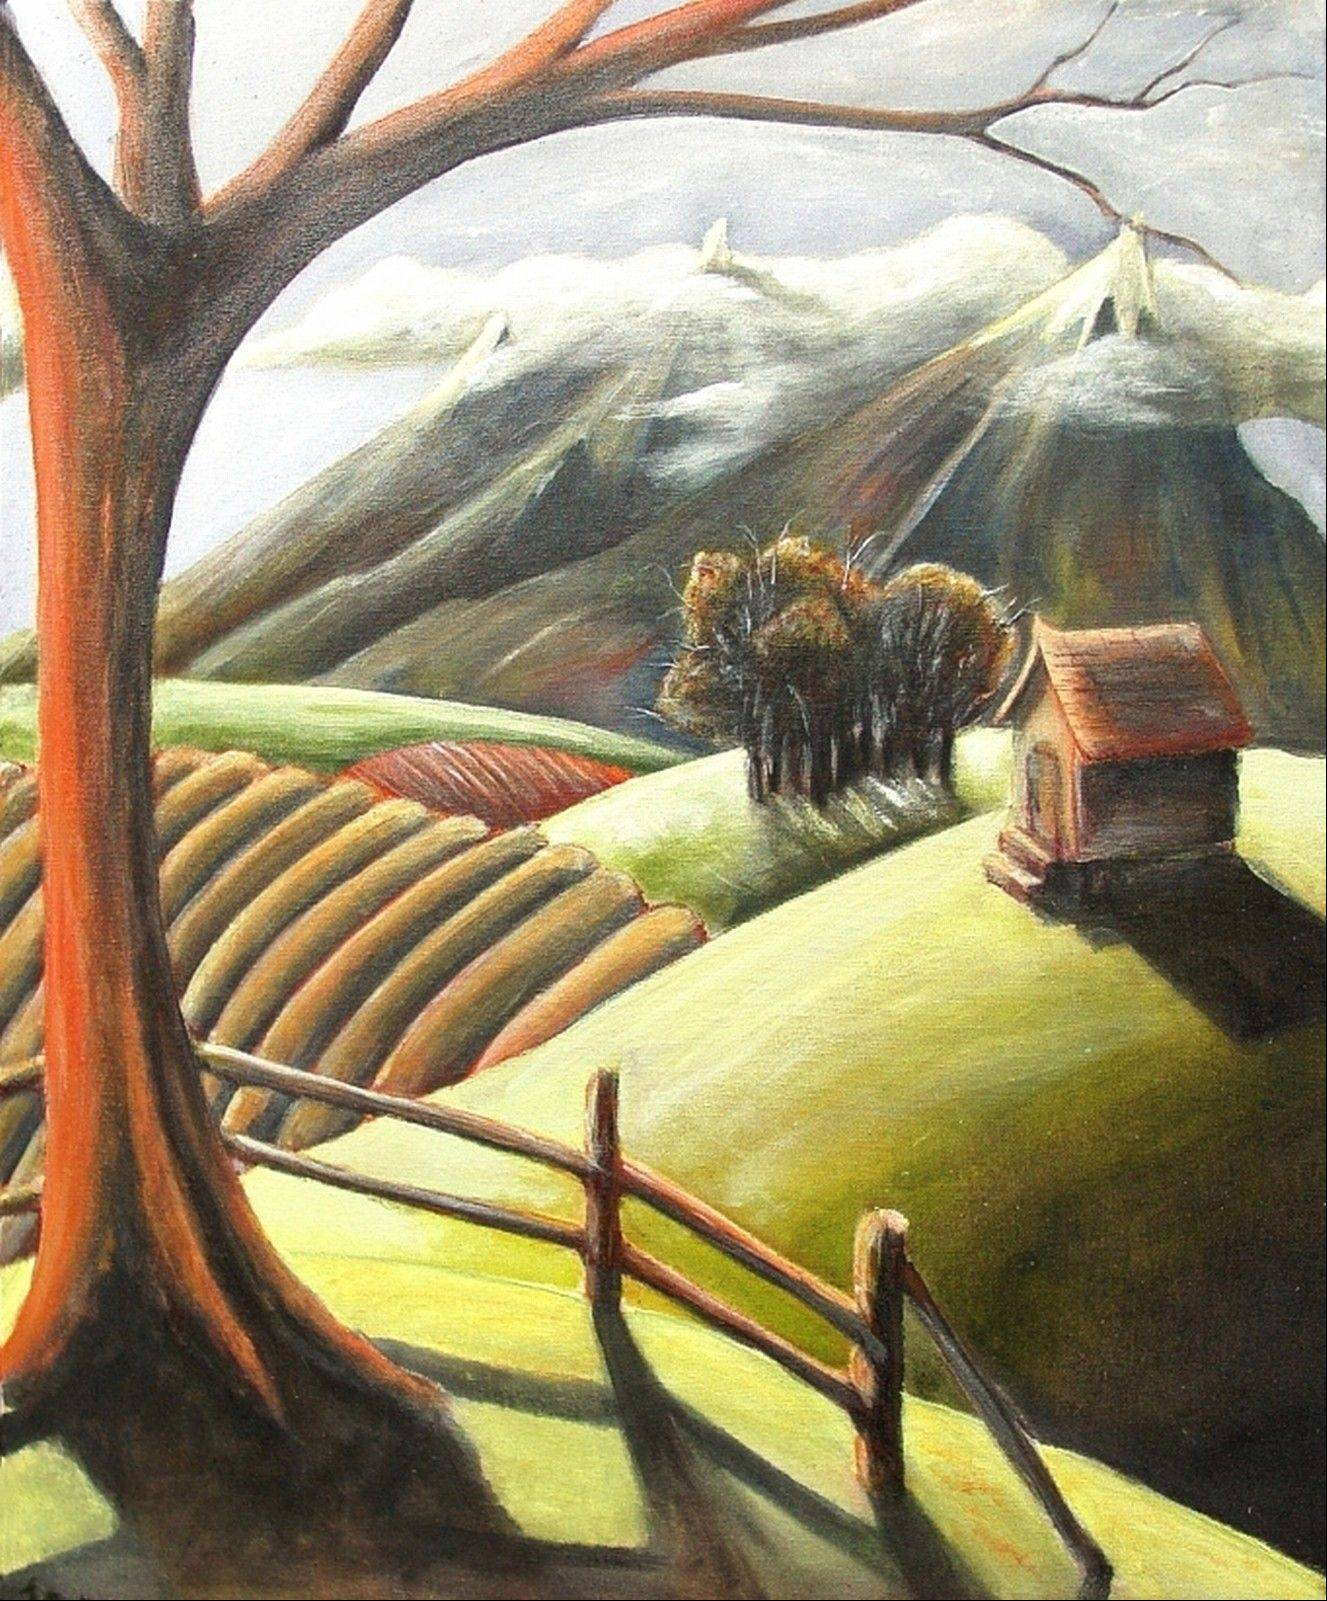 """Tamed Land"" by Jacob Ryckman, second prize winner in the 2010 art competition."